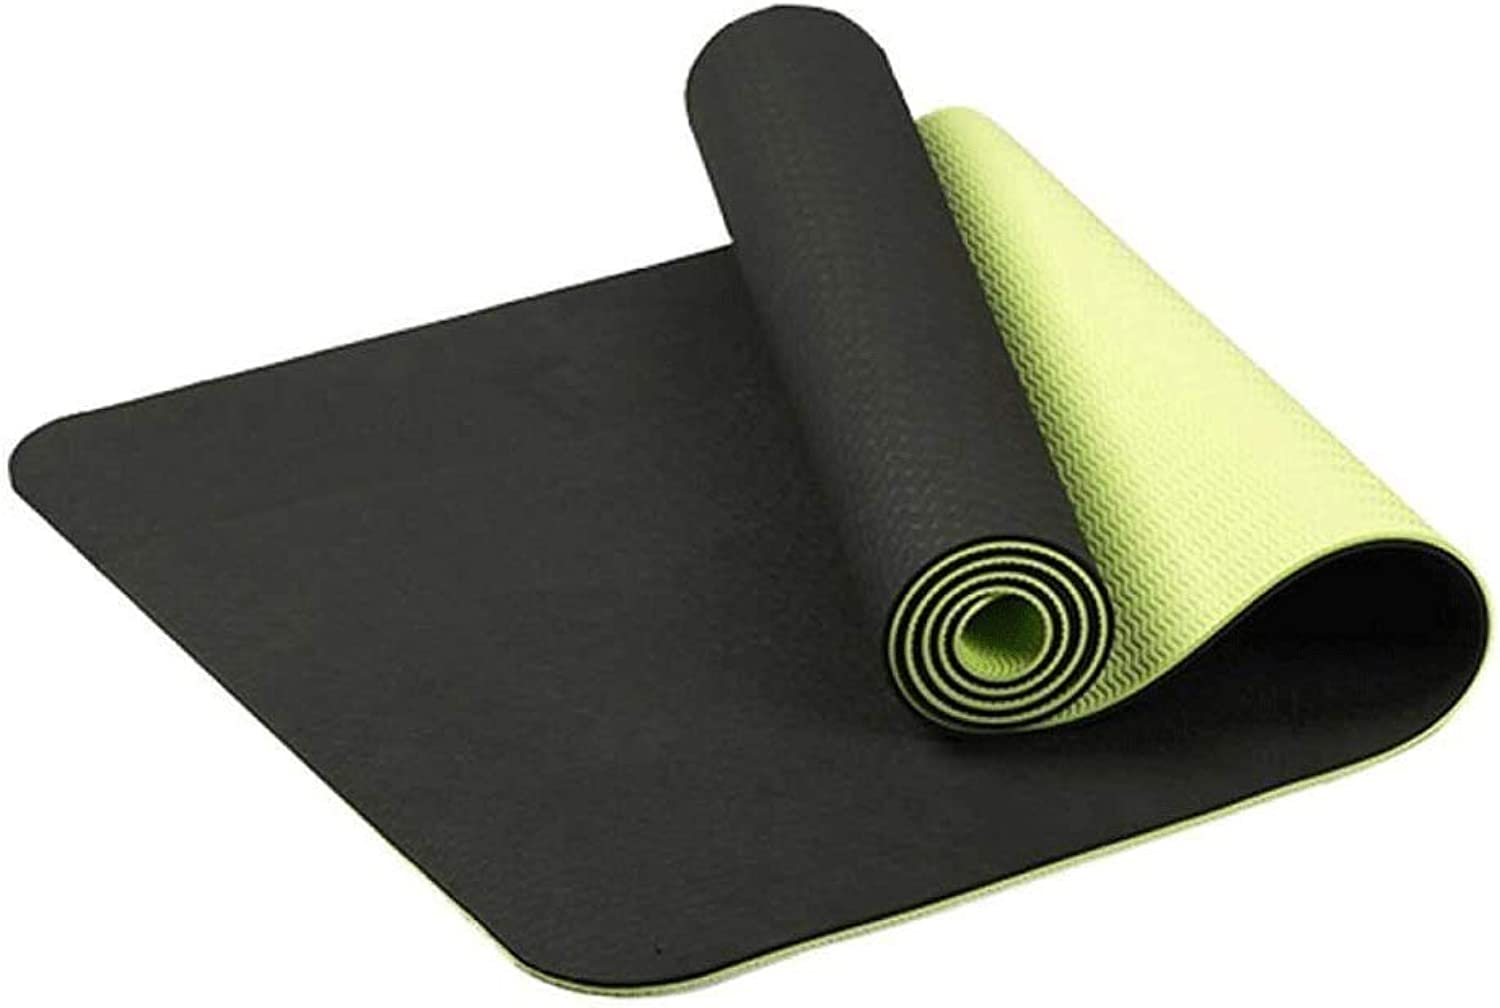 Outdoor Sports TPE Non Slip Yoga Mat Collapsible Portable Fitness Yoga Mat Durable and Lightweight Light and Alignment Yoga Mat Multi color Optional (color   E)